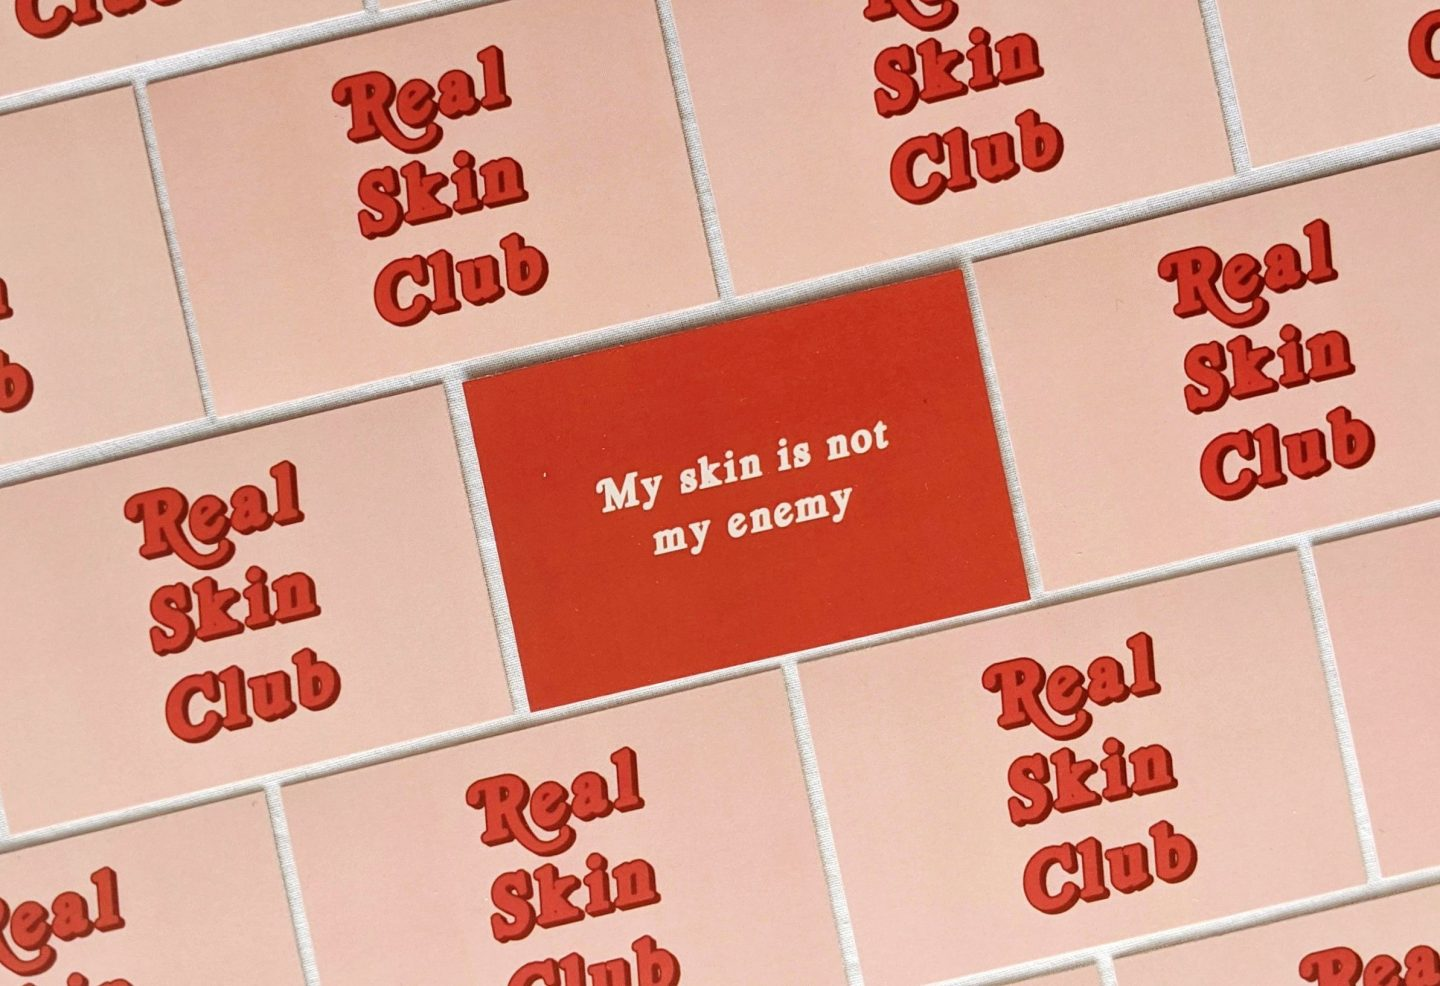 Photo of a Real Skin Club Affirmation Card, which reads 'My skin is not my enemy'. This is surrounded by cards featuring the Real Skin Club logo.  Positive affirmations for skin positivity.